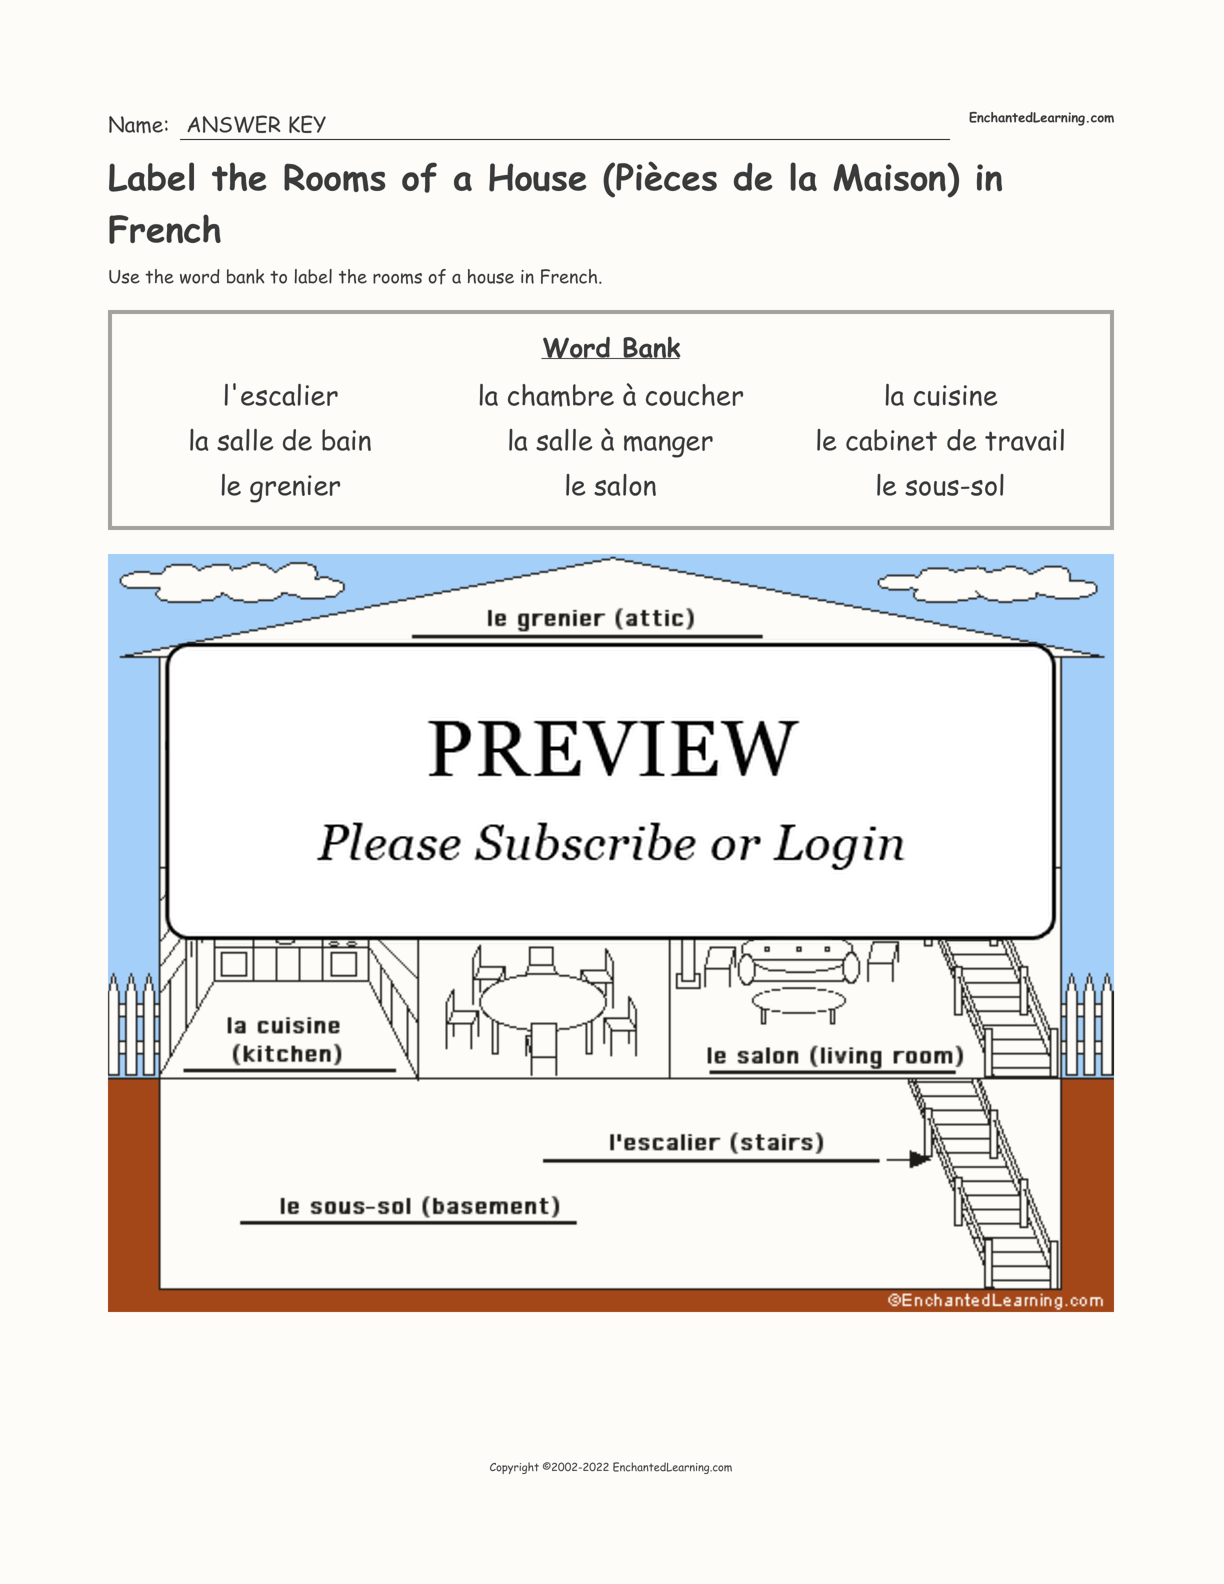 Label the Rooms of a House (Pièces de la Maison) in French interactive worksheet page 2